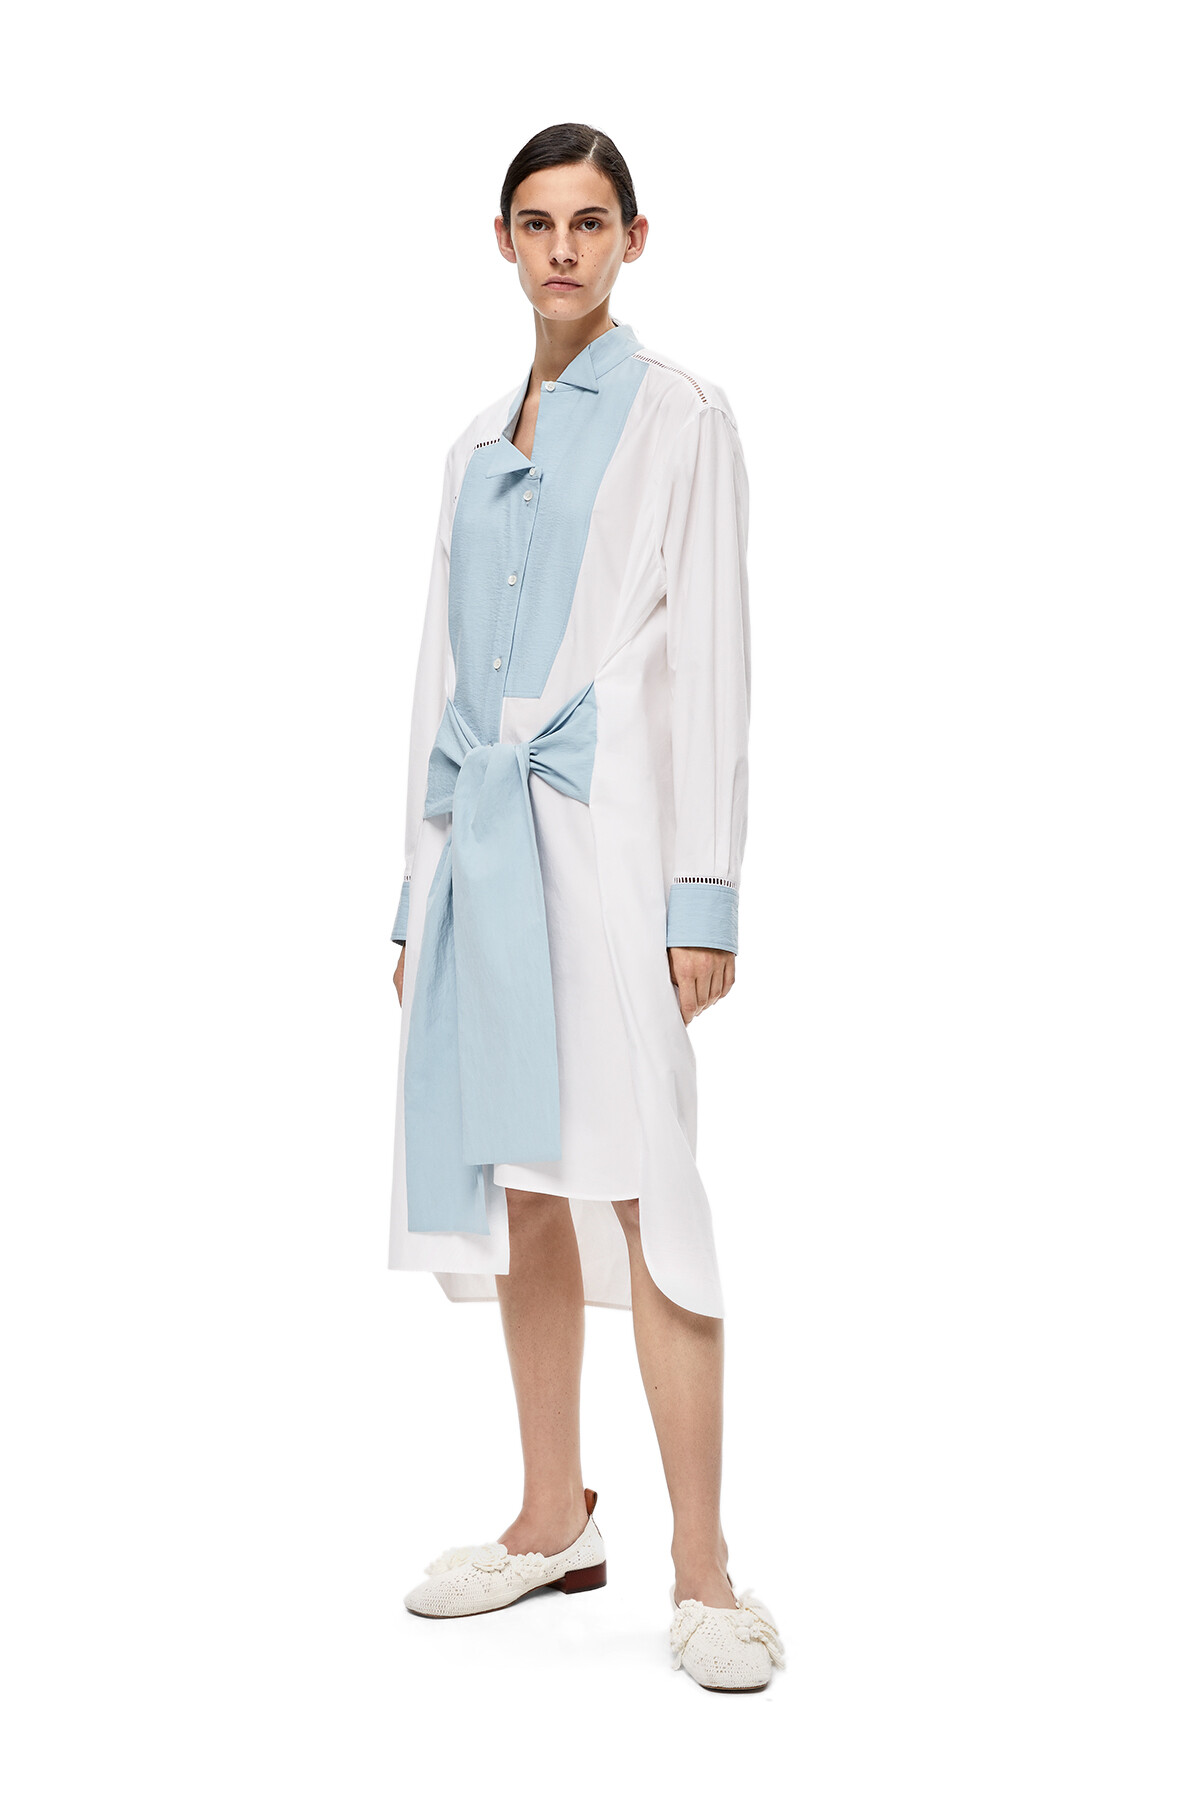 LOEWE Asymtric Shirt Dress White/Blue front